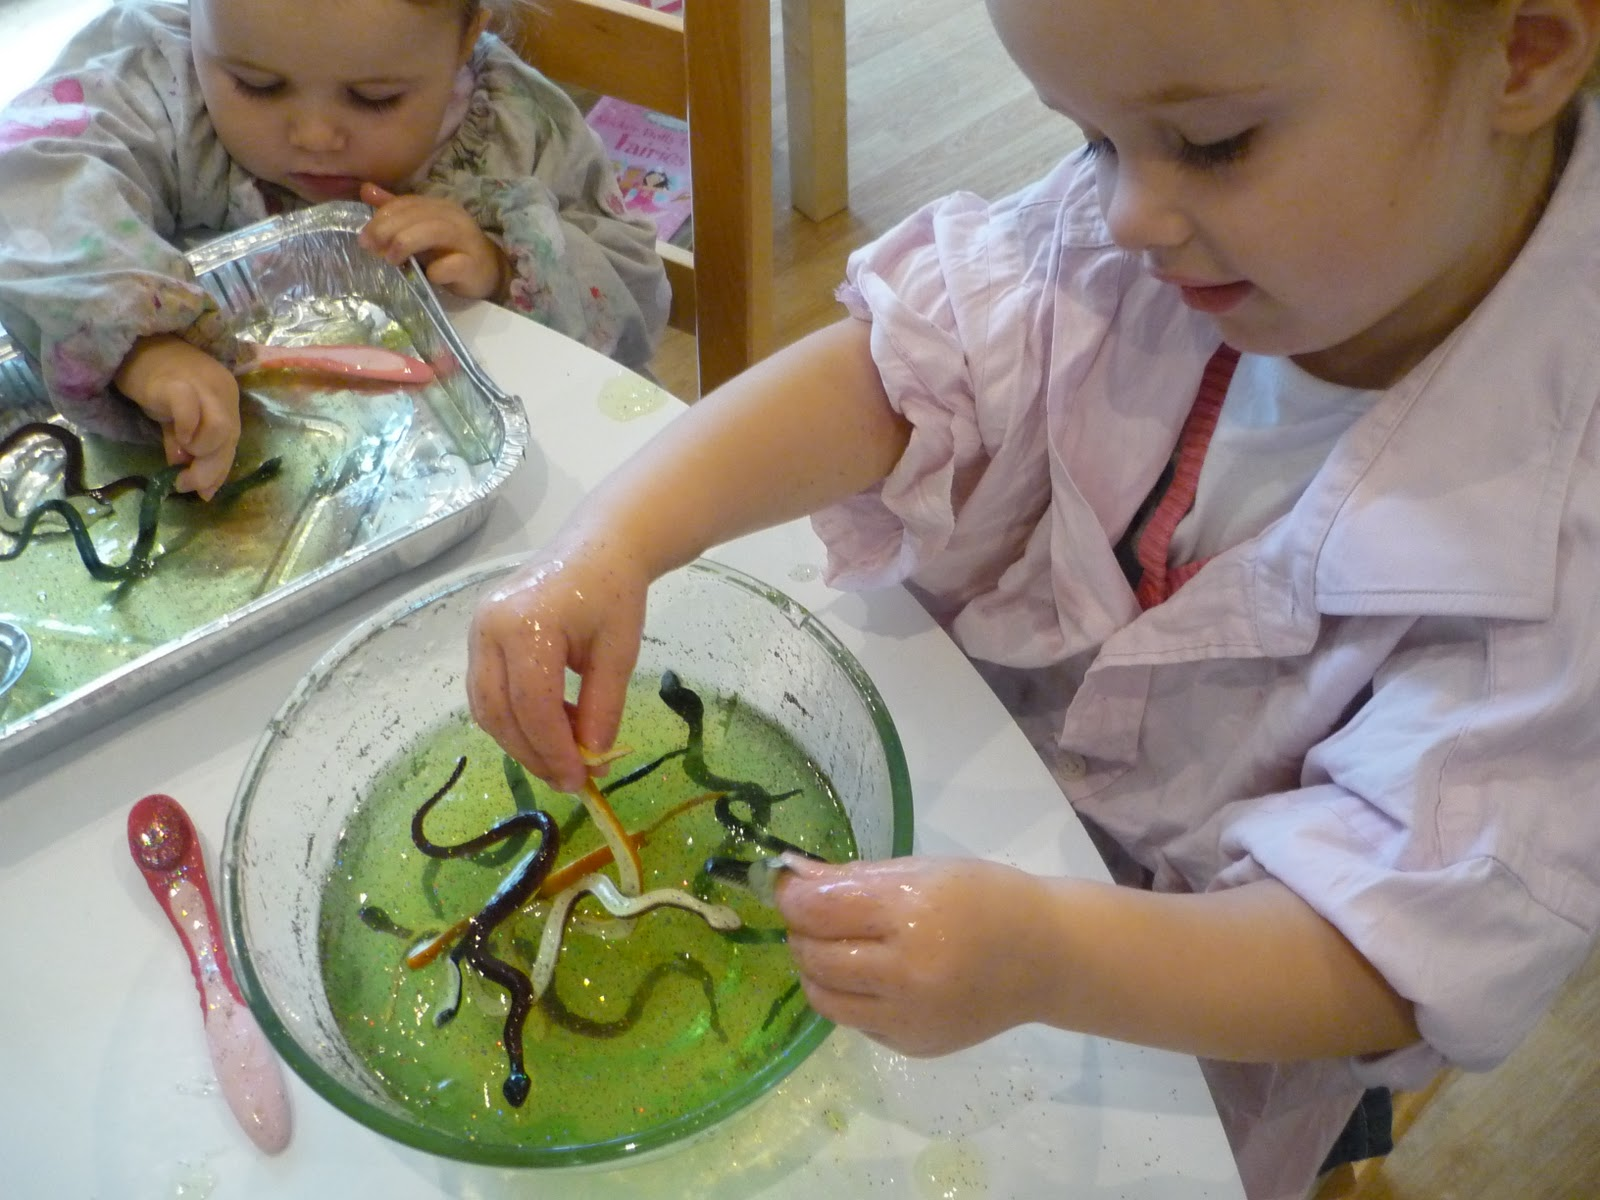 Messy Play Snakes In Jelly